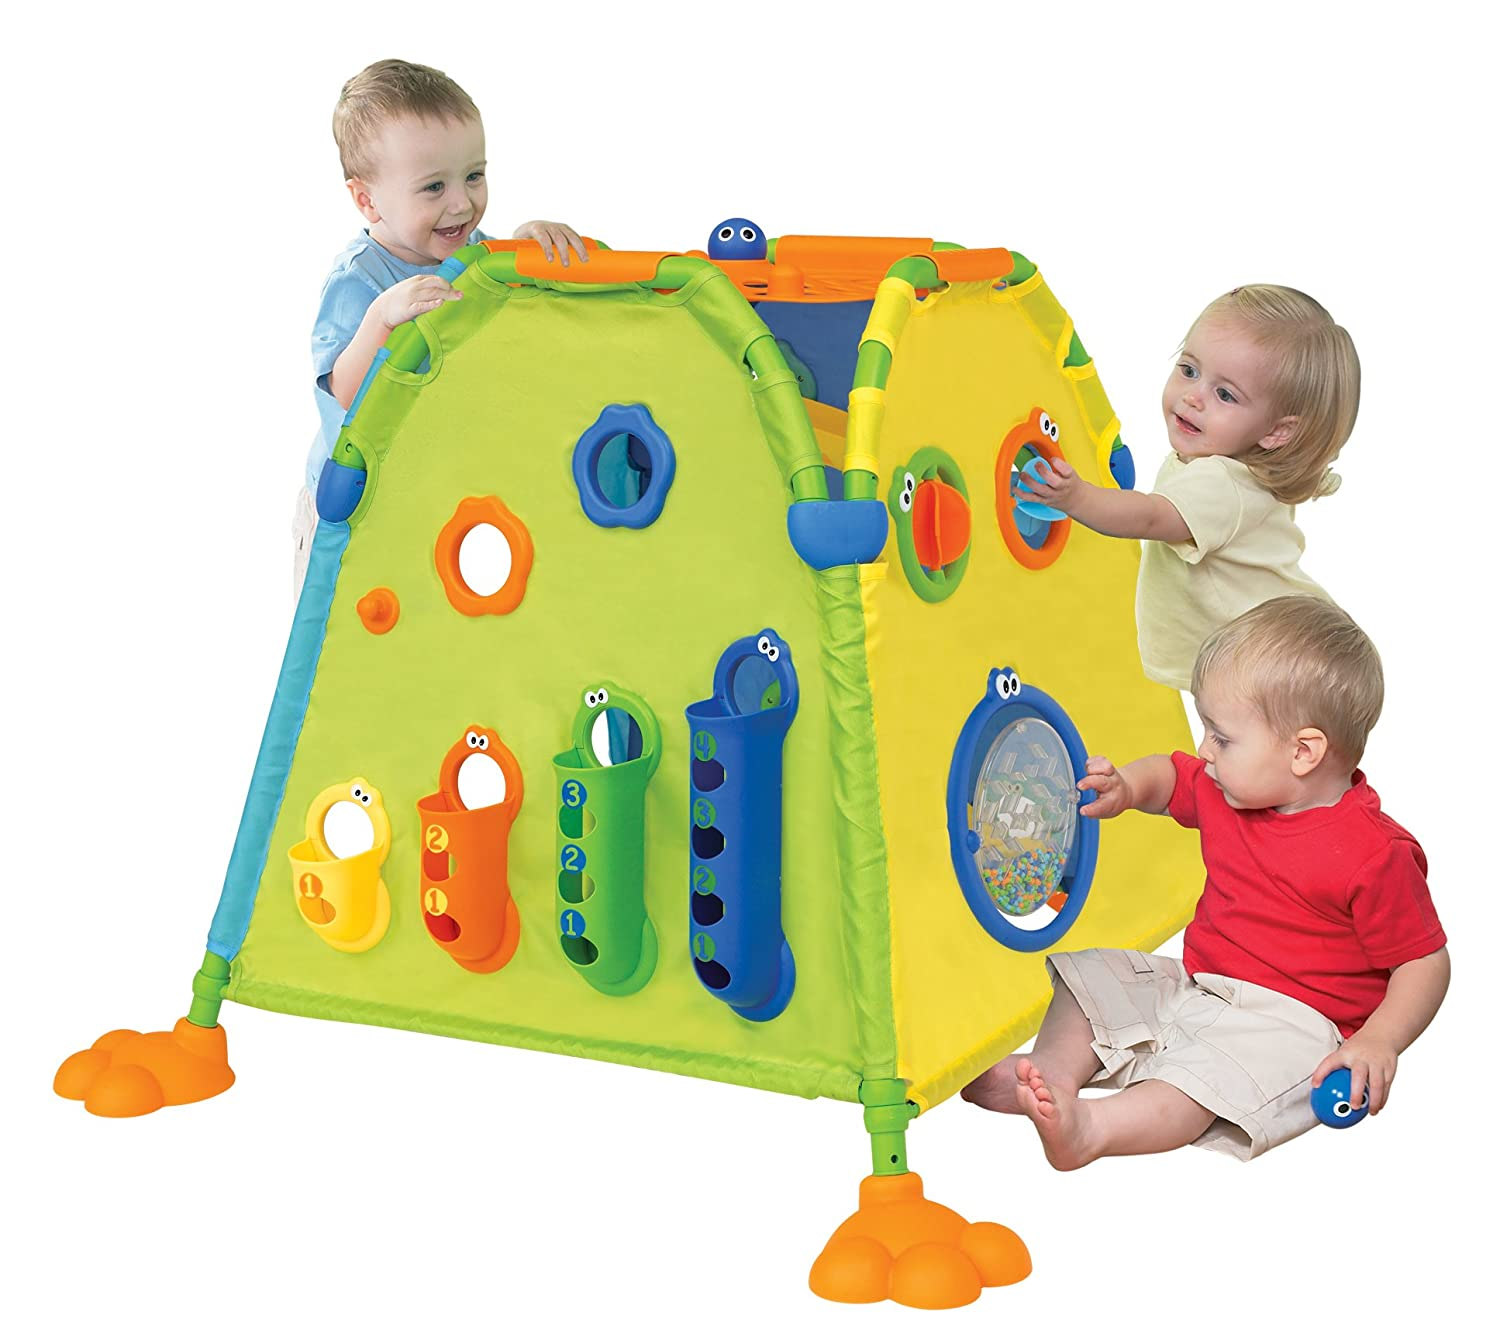 TOMY Play to Learn Discovery Dome Deluxe Amazon Toys & Games